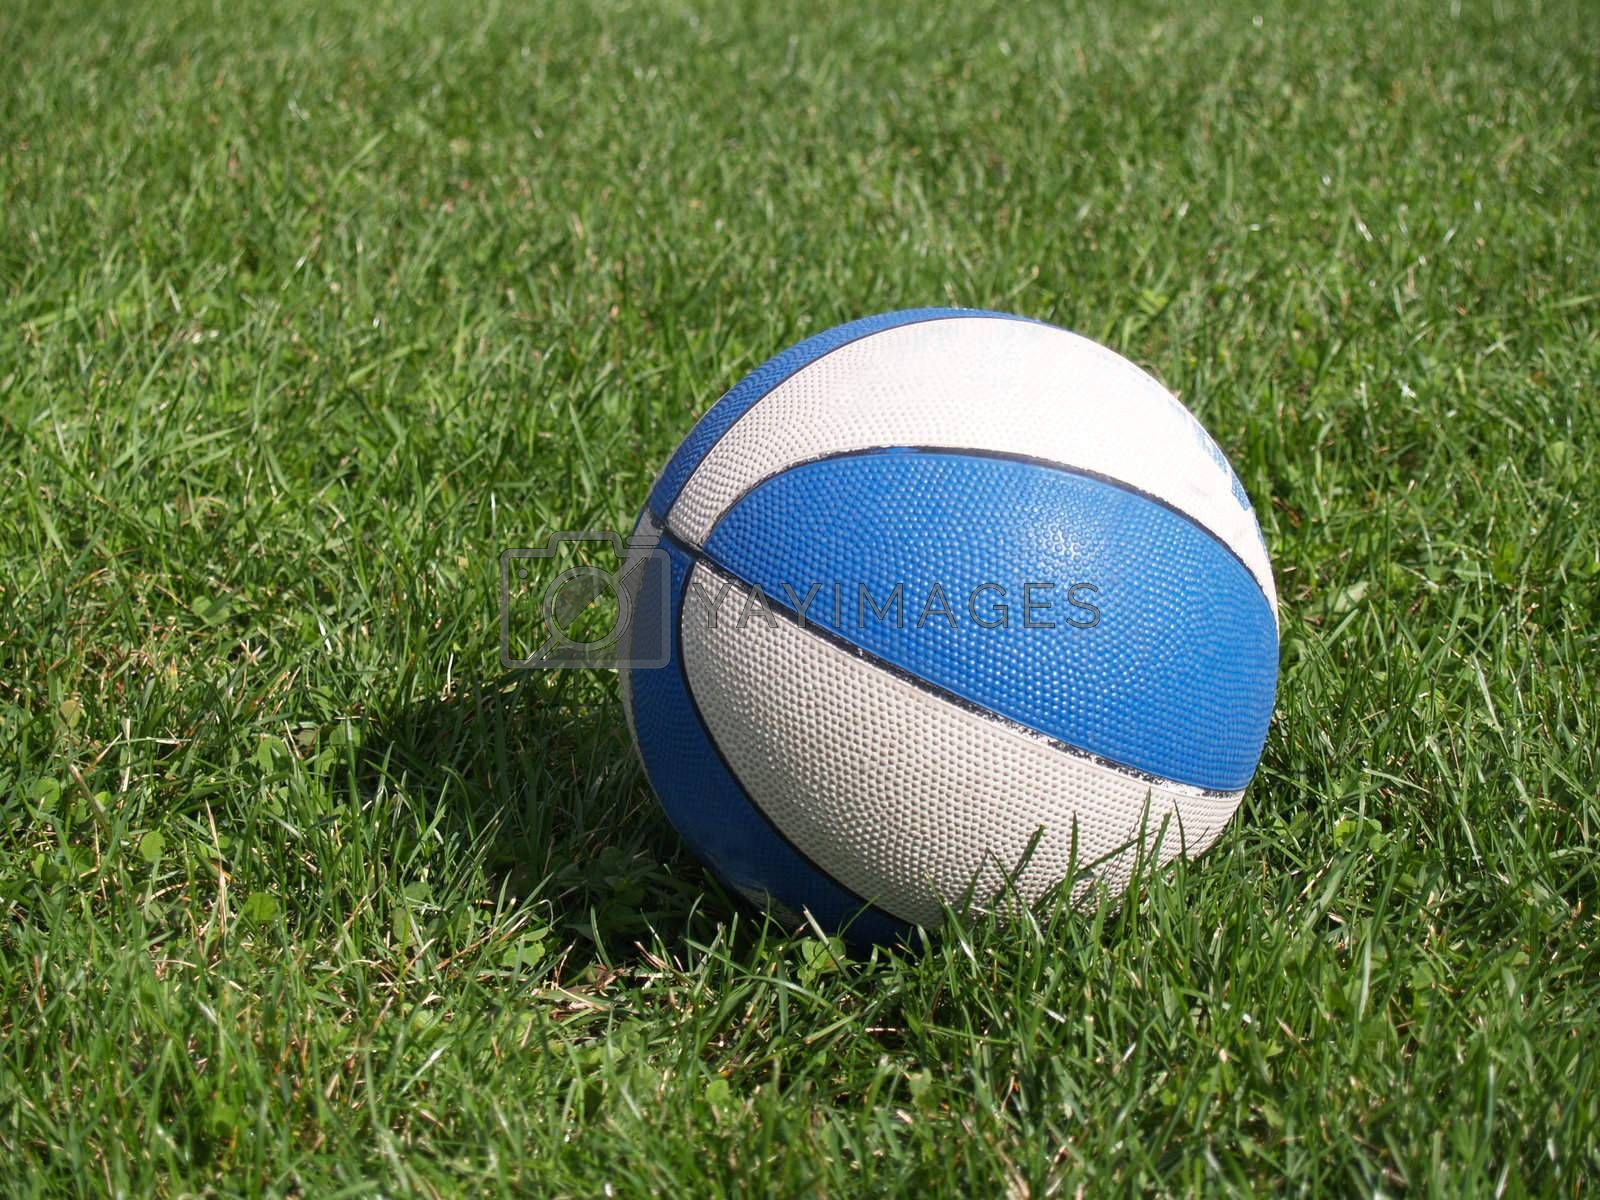 basketball sitting in the grass